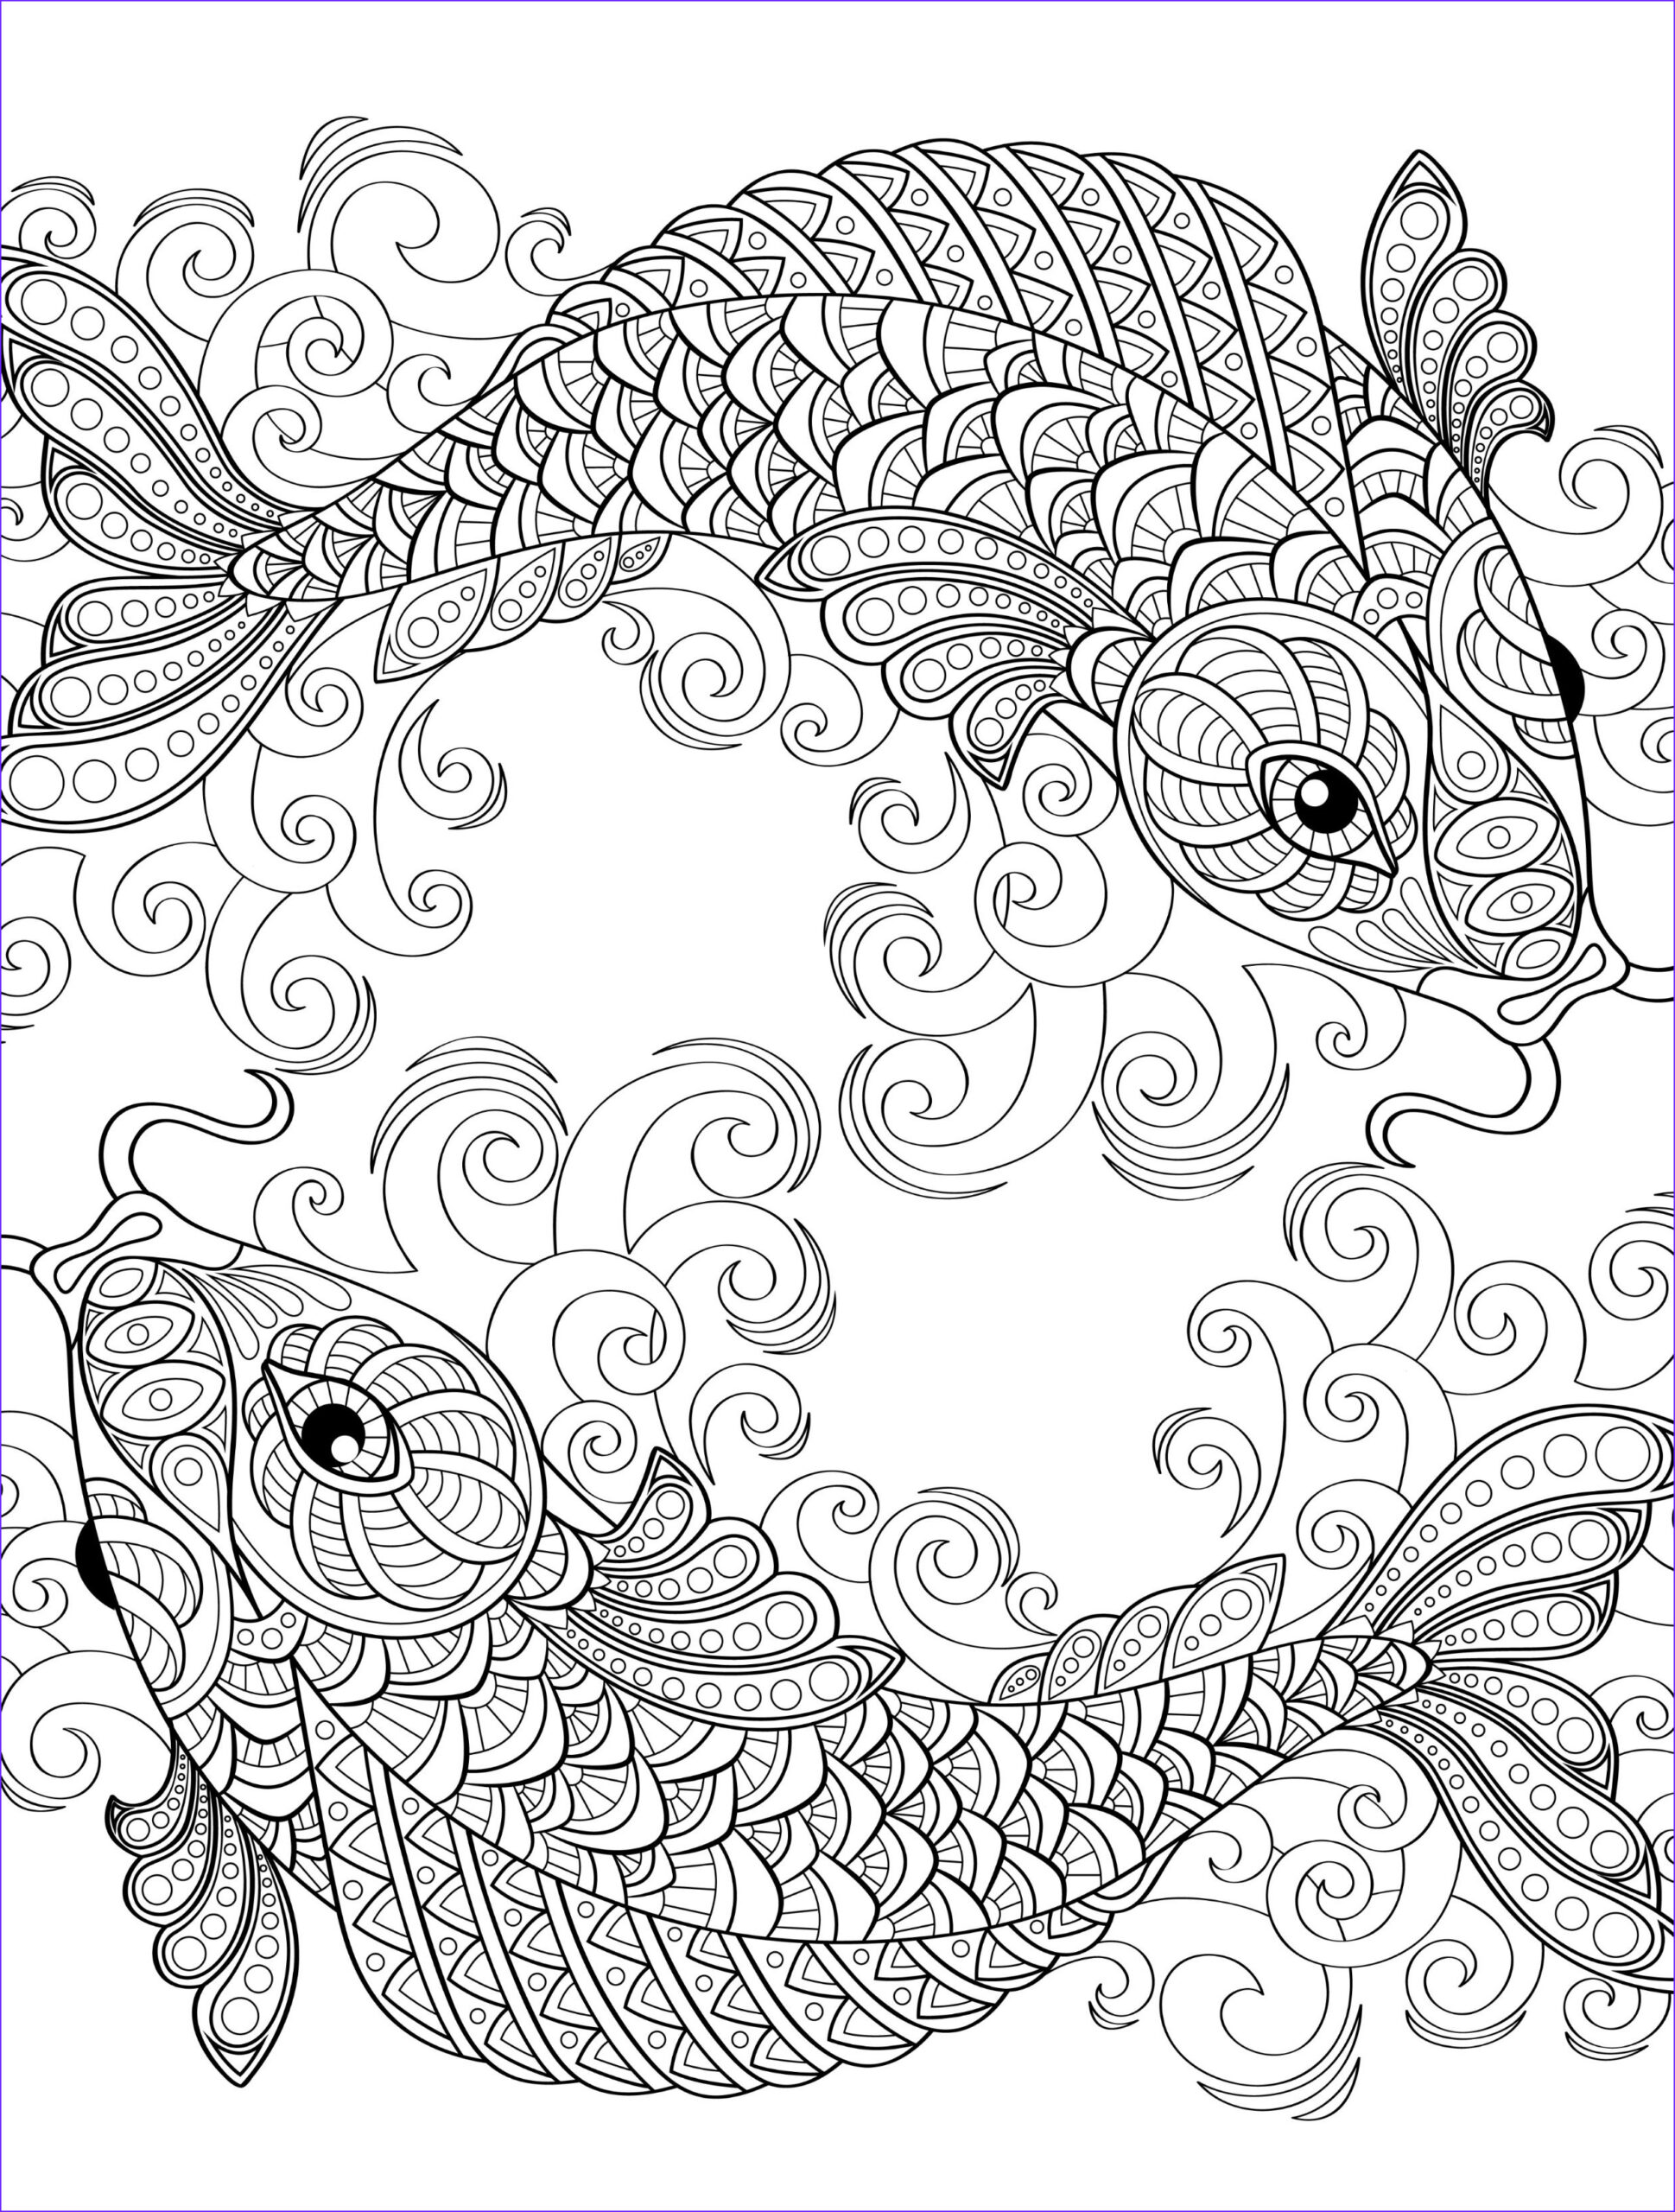 Free Coloring Pages For Adults Beautiful Images Pin On Coloring